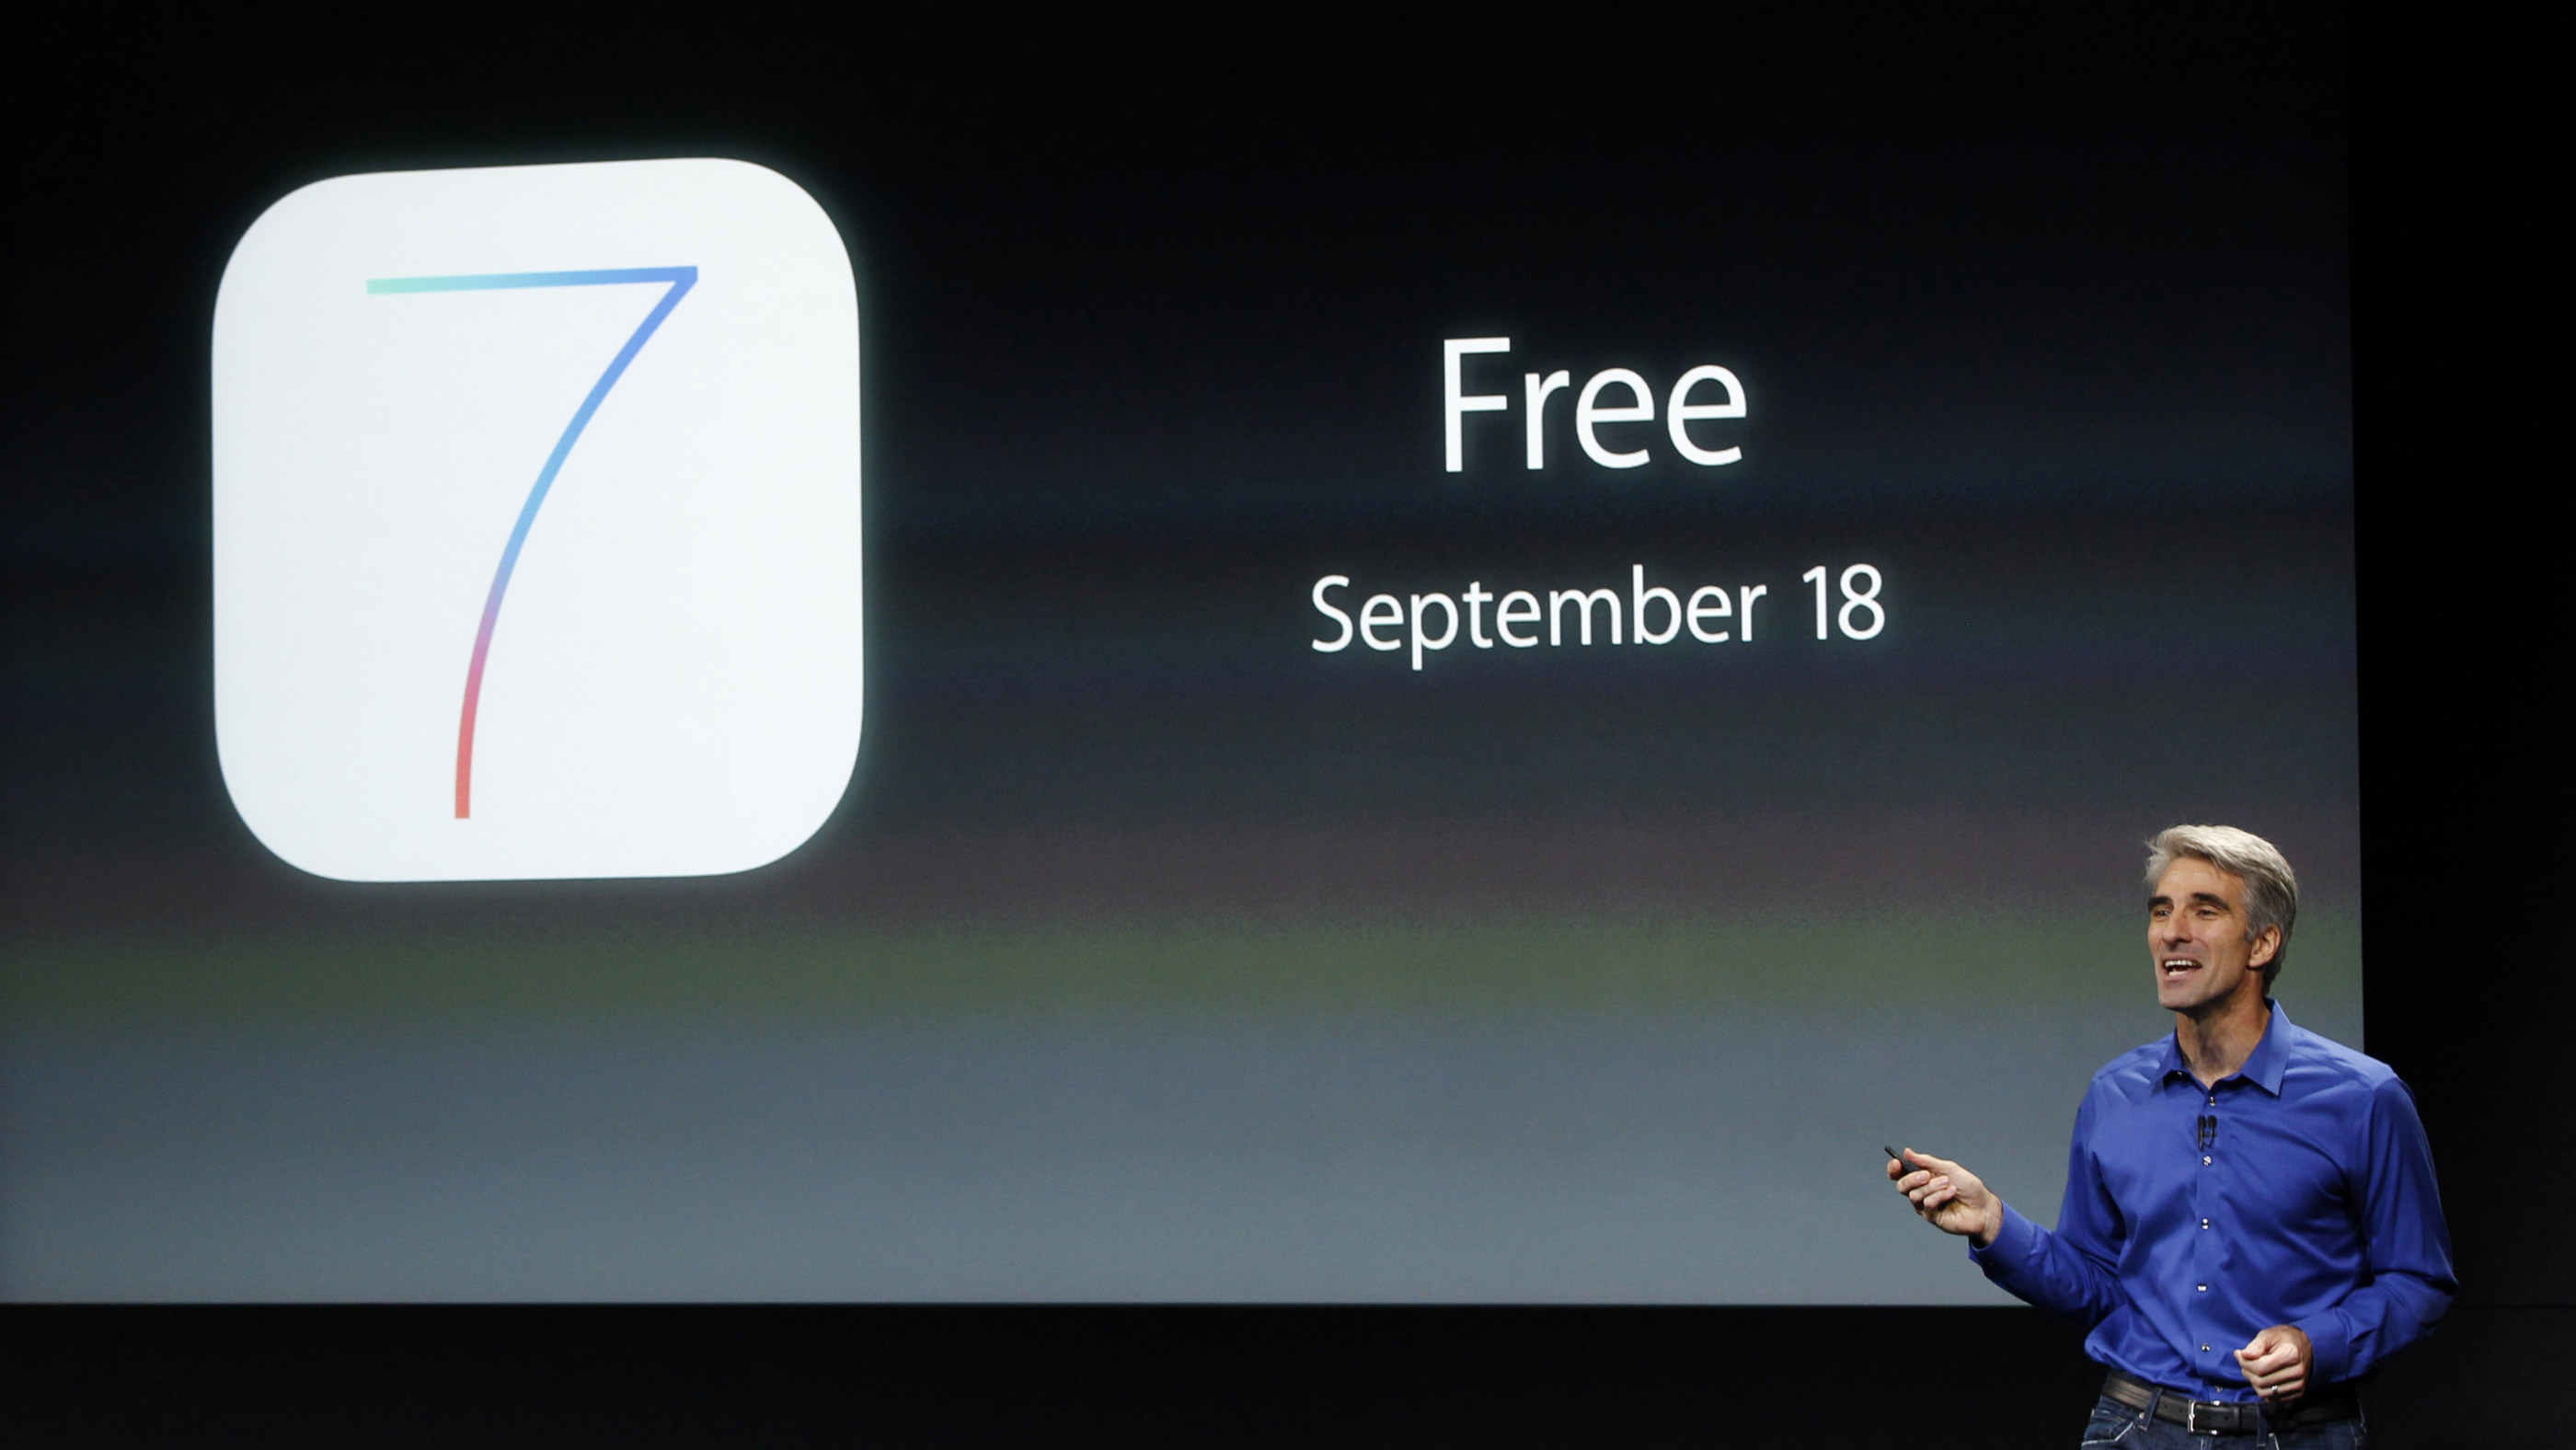 Apple's Craig Federighi talks about iOS7 at the company's event in Cupertino, California.